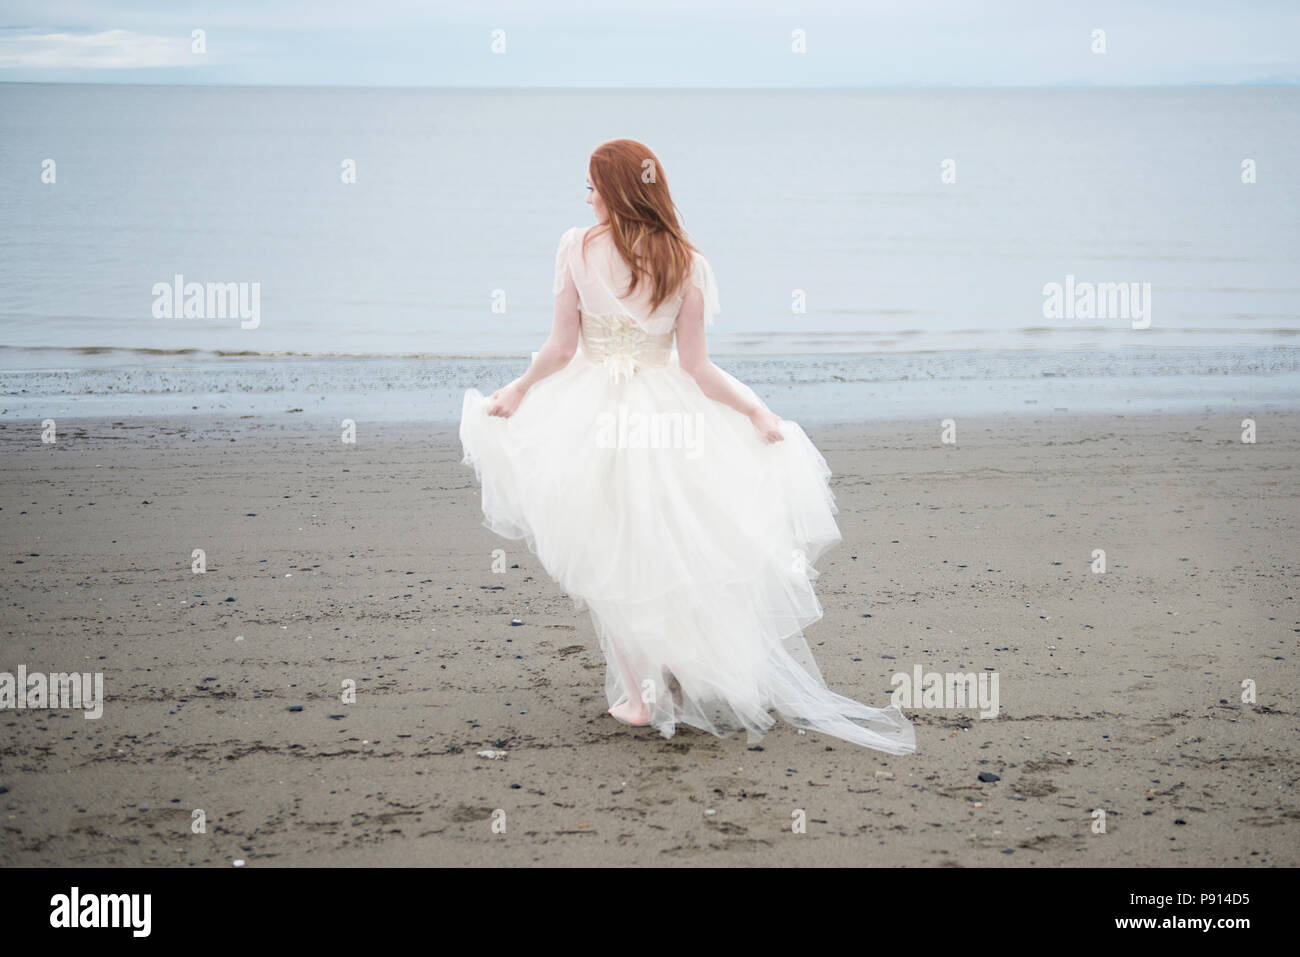 4c8cae5b3febd View from behind of beautiful redhead young woman on the beach, wearing a  flowing, white dress.